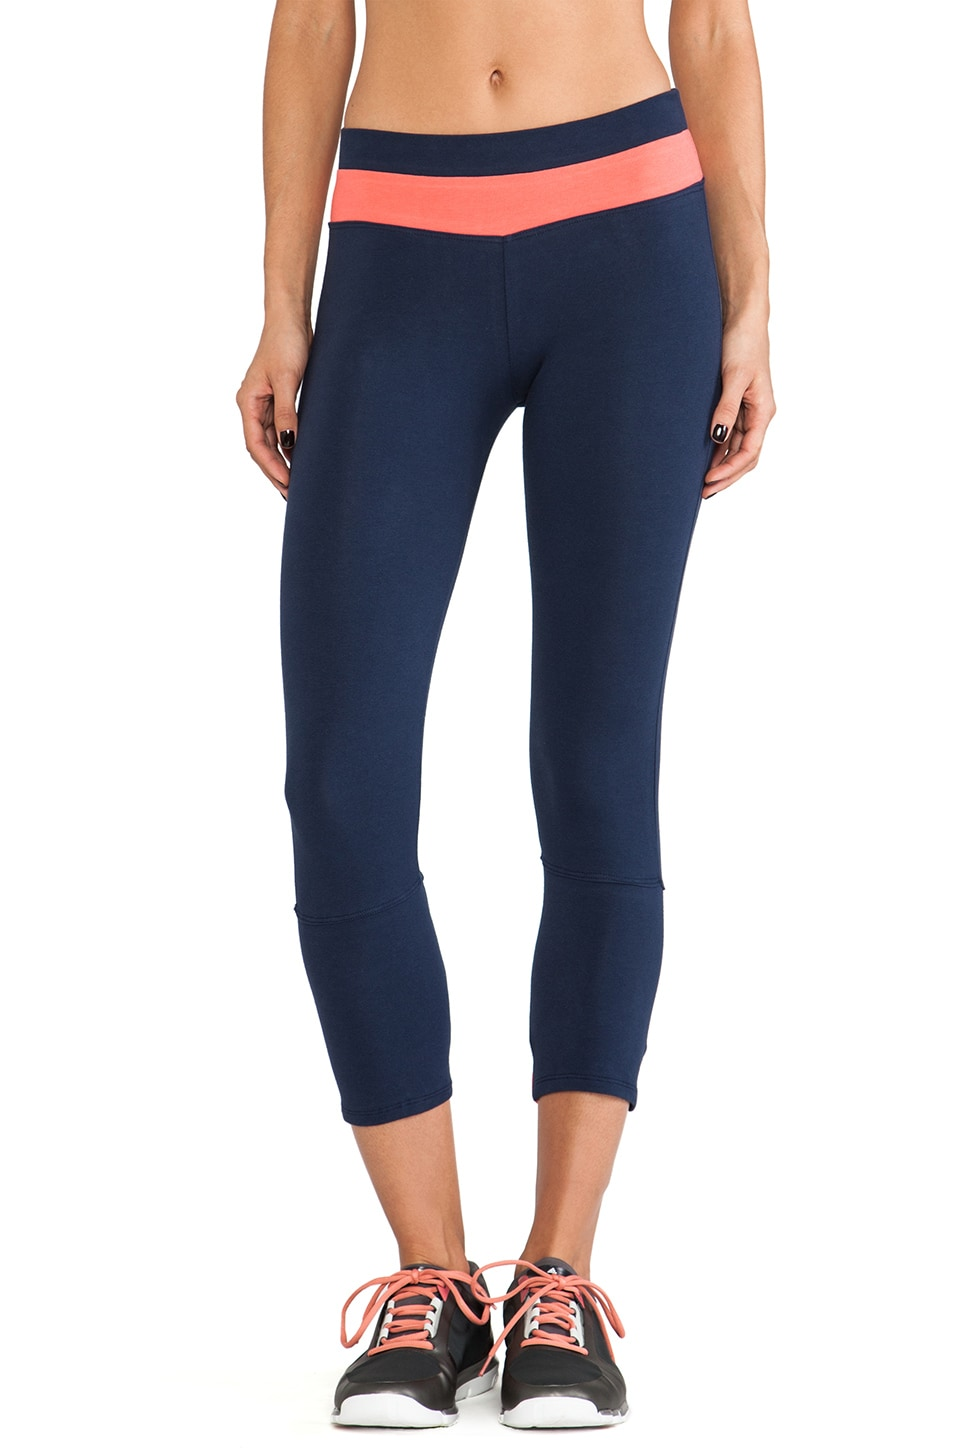 SOLOW Crop Legging in Navy & Guava